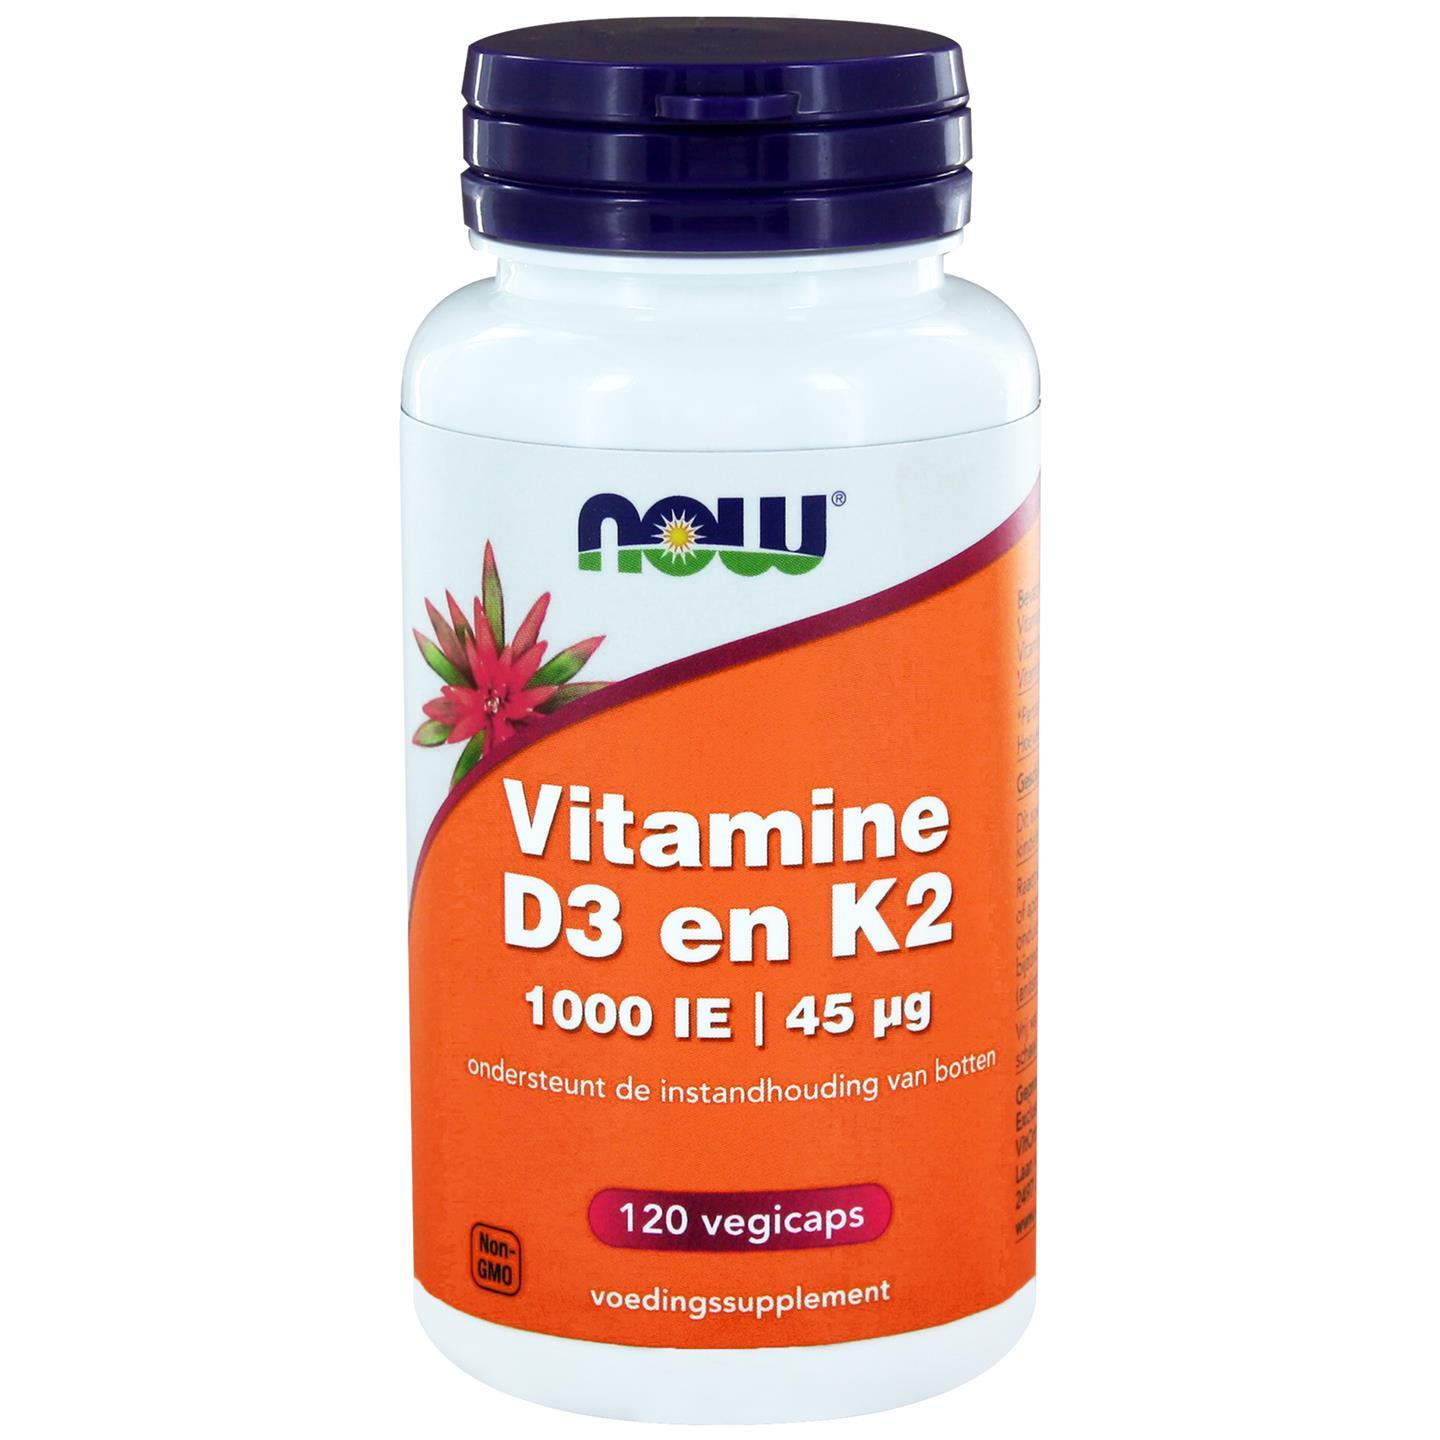 Vitamine D3 1000 IE Vitamine K2 (120 veggie caps) Now Foods